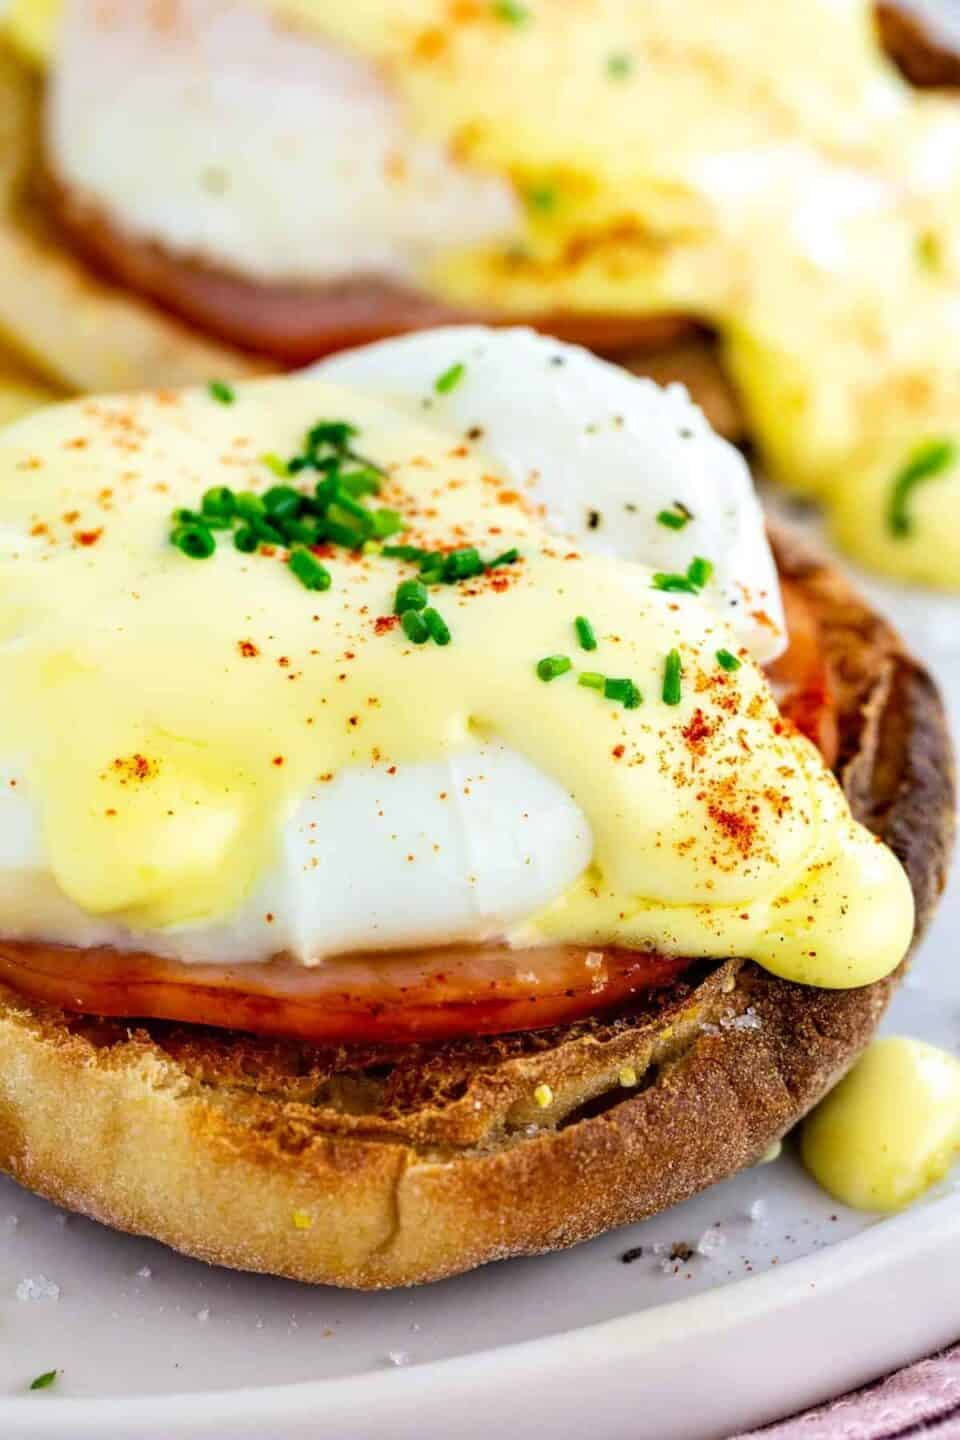 17 Eggs Benedict Recipes to Make for Brunch